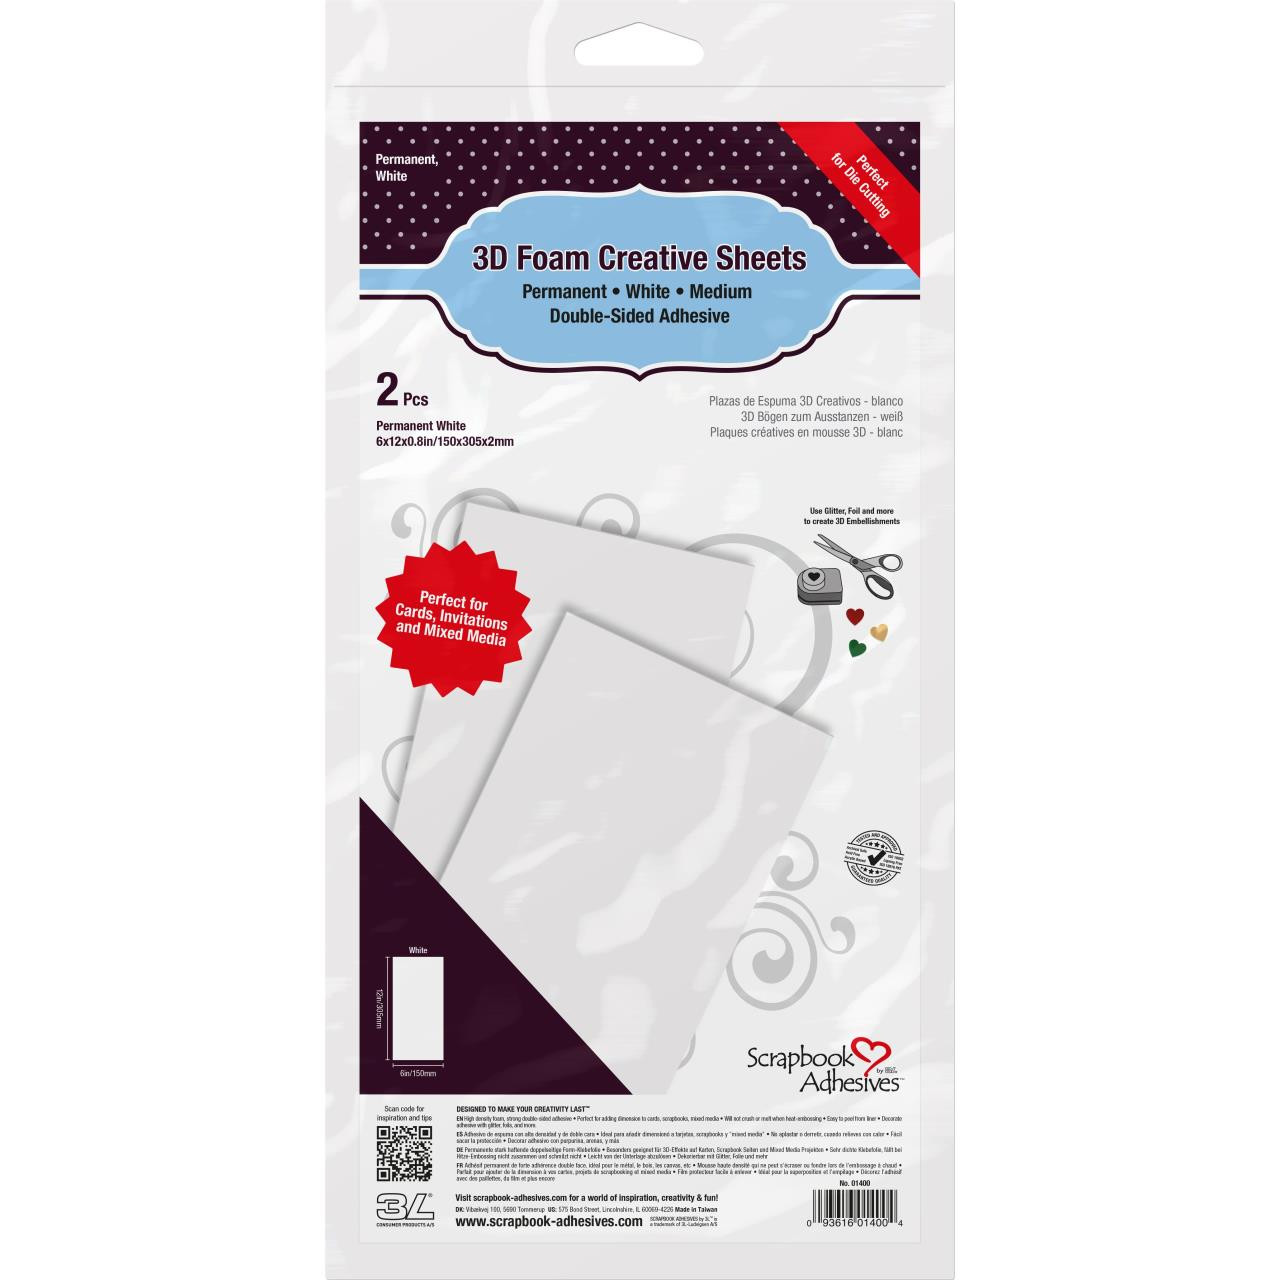 Scrapbook Adhesives 3D Foam Creative Sheets Medium, White - 936160140044